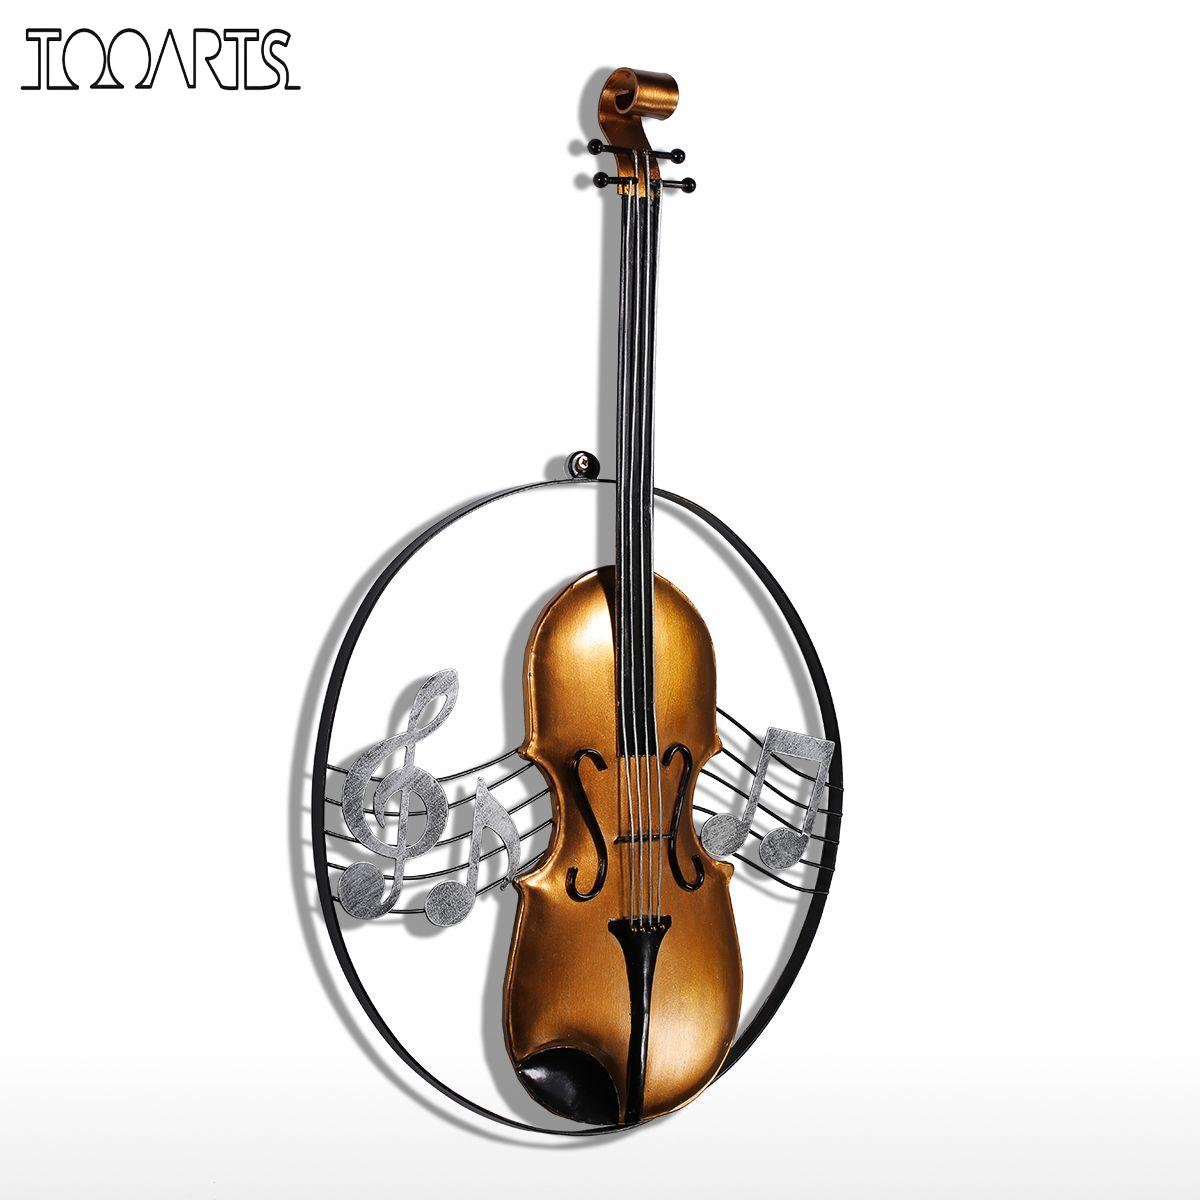 Violin christmas ornaments - Tooarts Metal Wall Sculpture Violin Hanging Ornament Home Decor Wall Hangings Decor Music Instrument Craft Gift